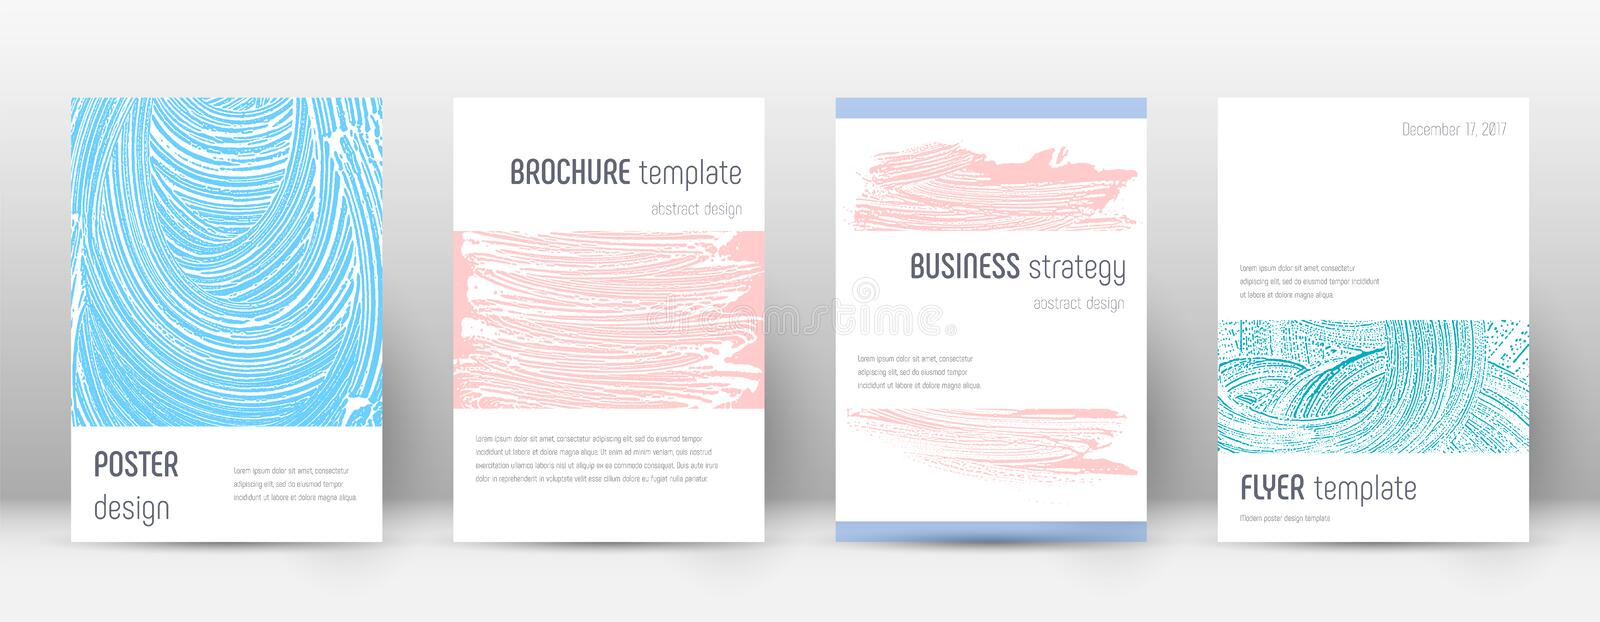 Cover page design template. Minimalistic brochure. Layout. Comely trendy abstract cover page. Pink and blue grunge texture background. Bold poster stock illustration